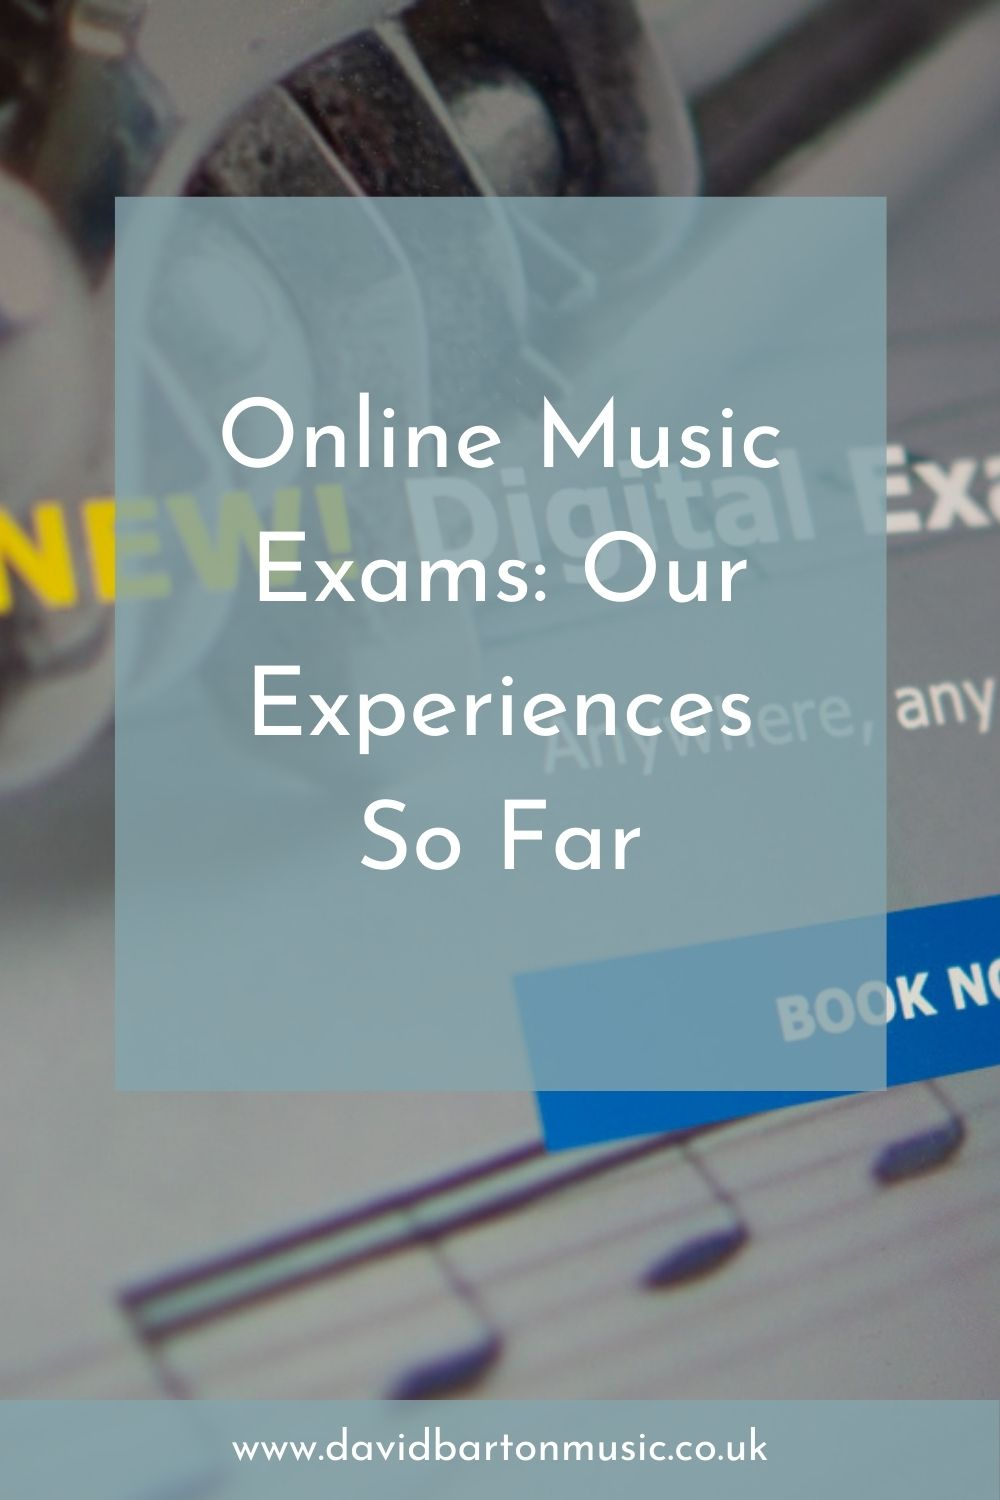 Online Music Exams: Our Experiences So Far - Pinterest Graphic